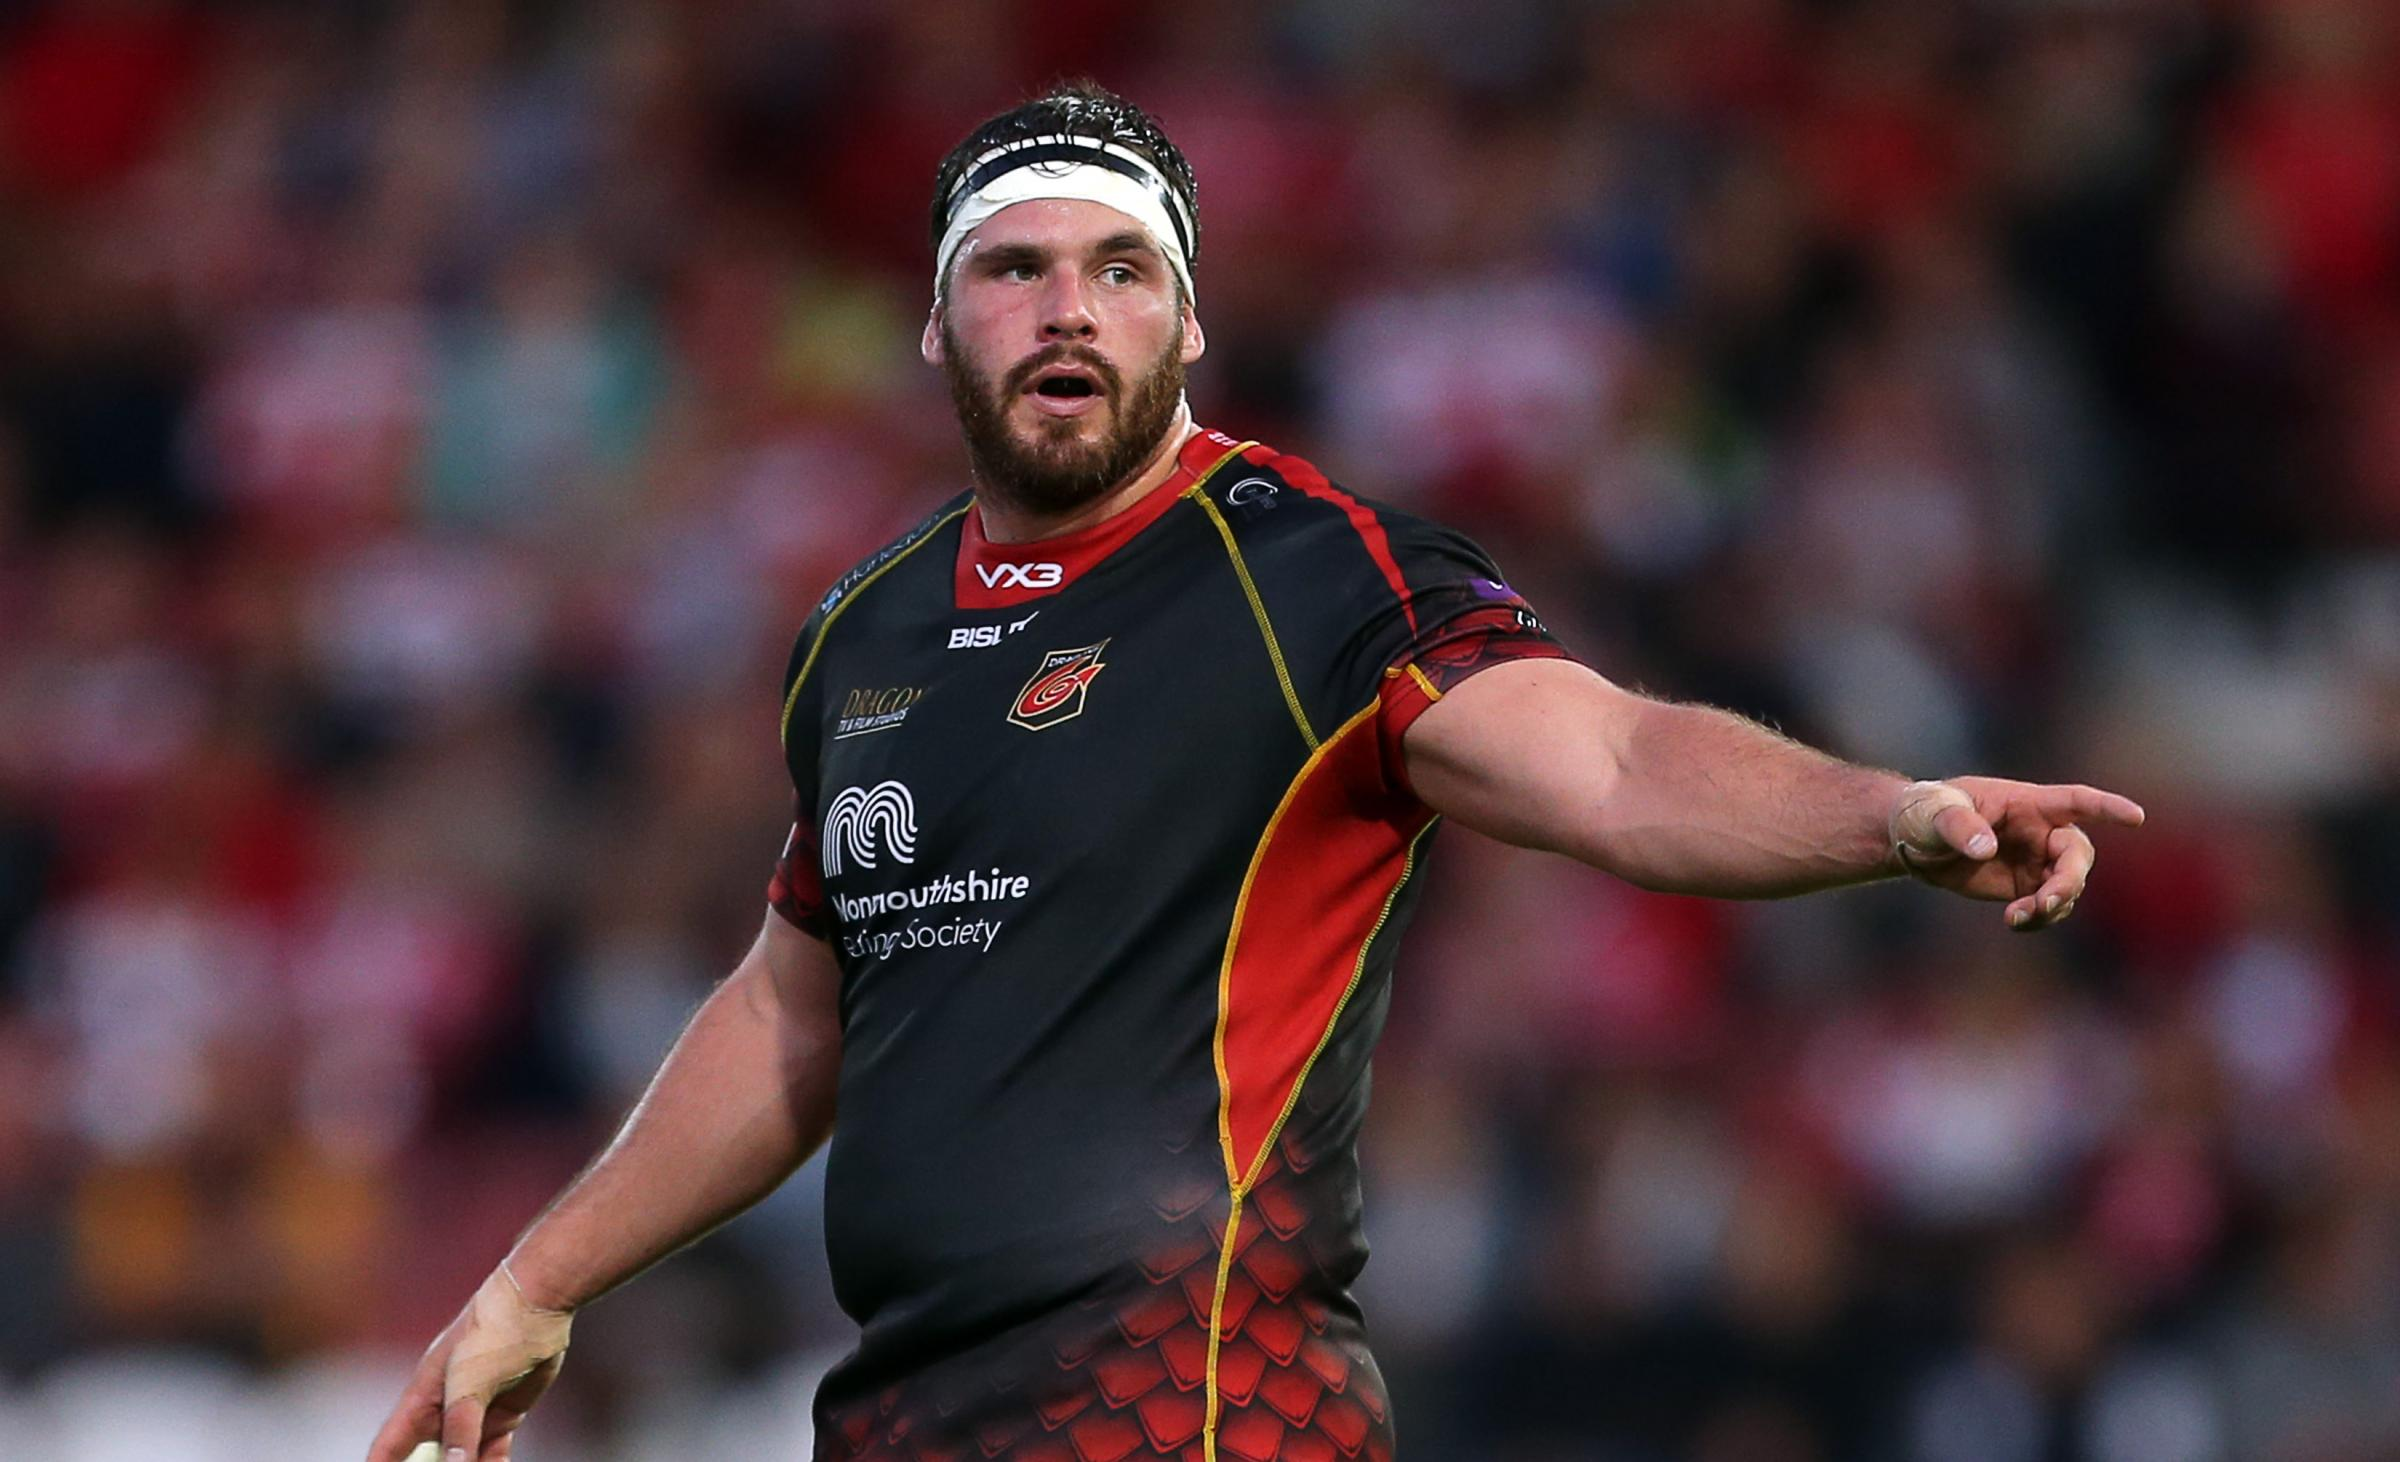 INJURY BLOW: The Dragons are without loosehead Ryan Bevington (Pic: Huw Evans Agency)